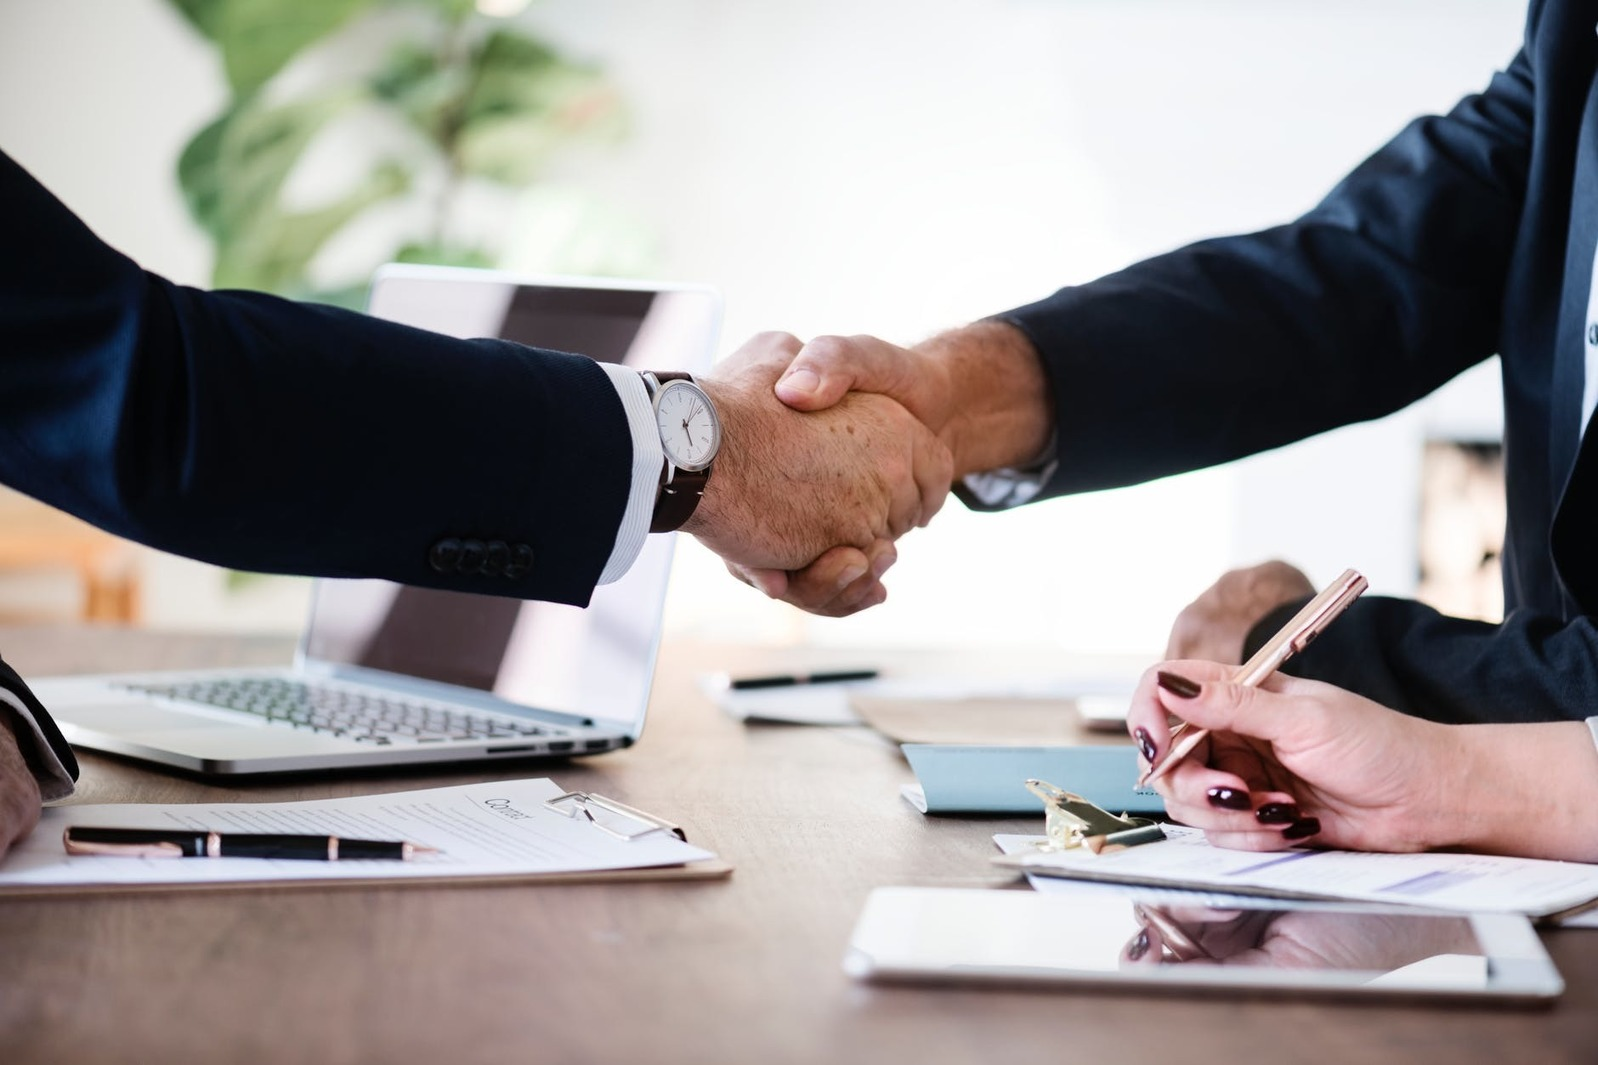 5 Reasons to Use a Recruitment Agency